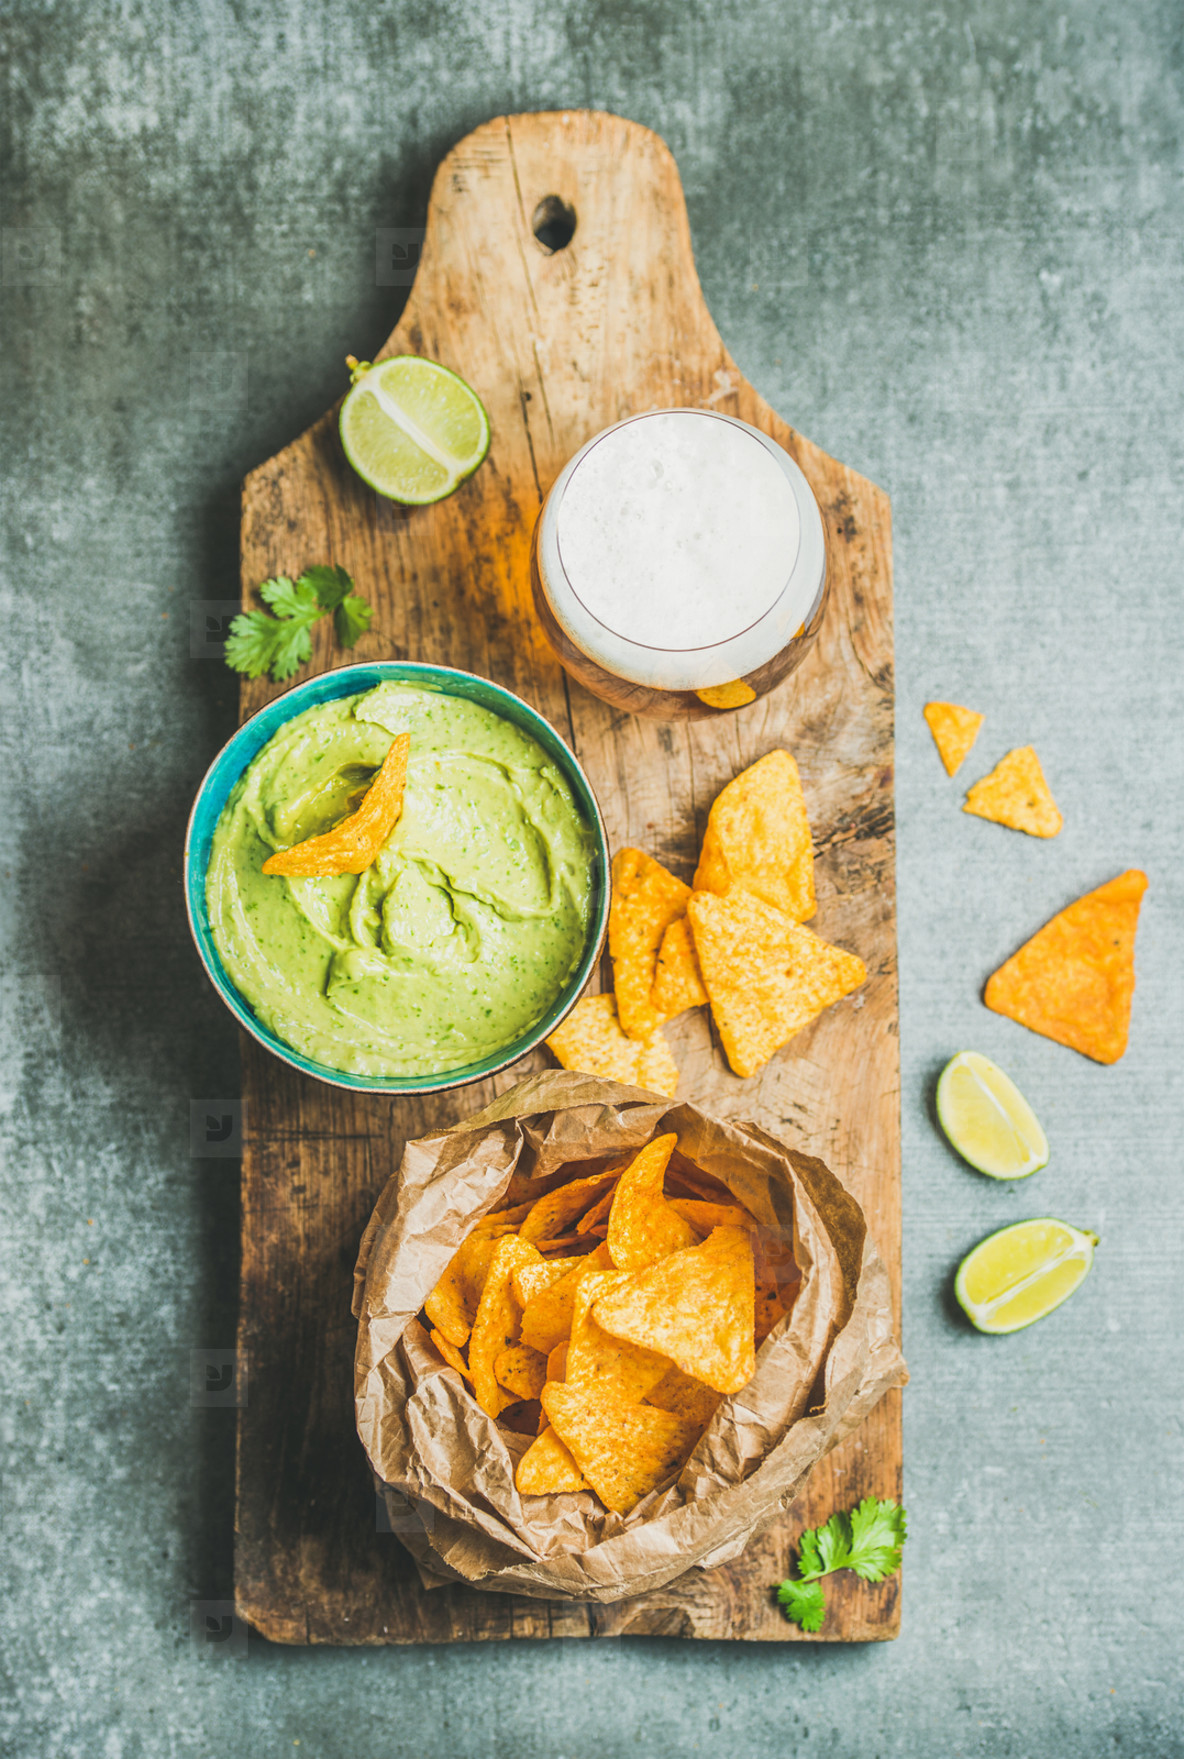 Mexican corn chips  fresh guacamole sauce and beer  wooden board